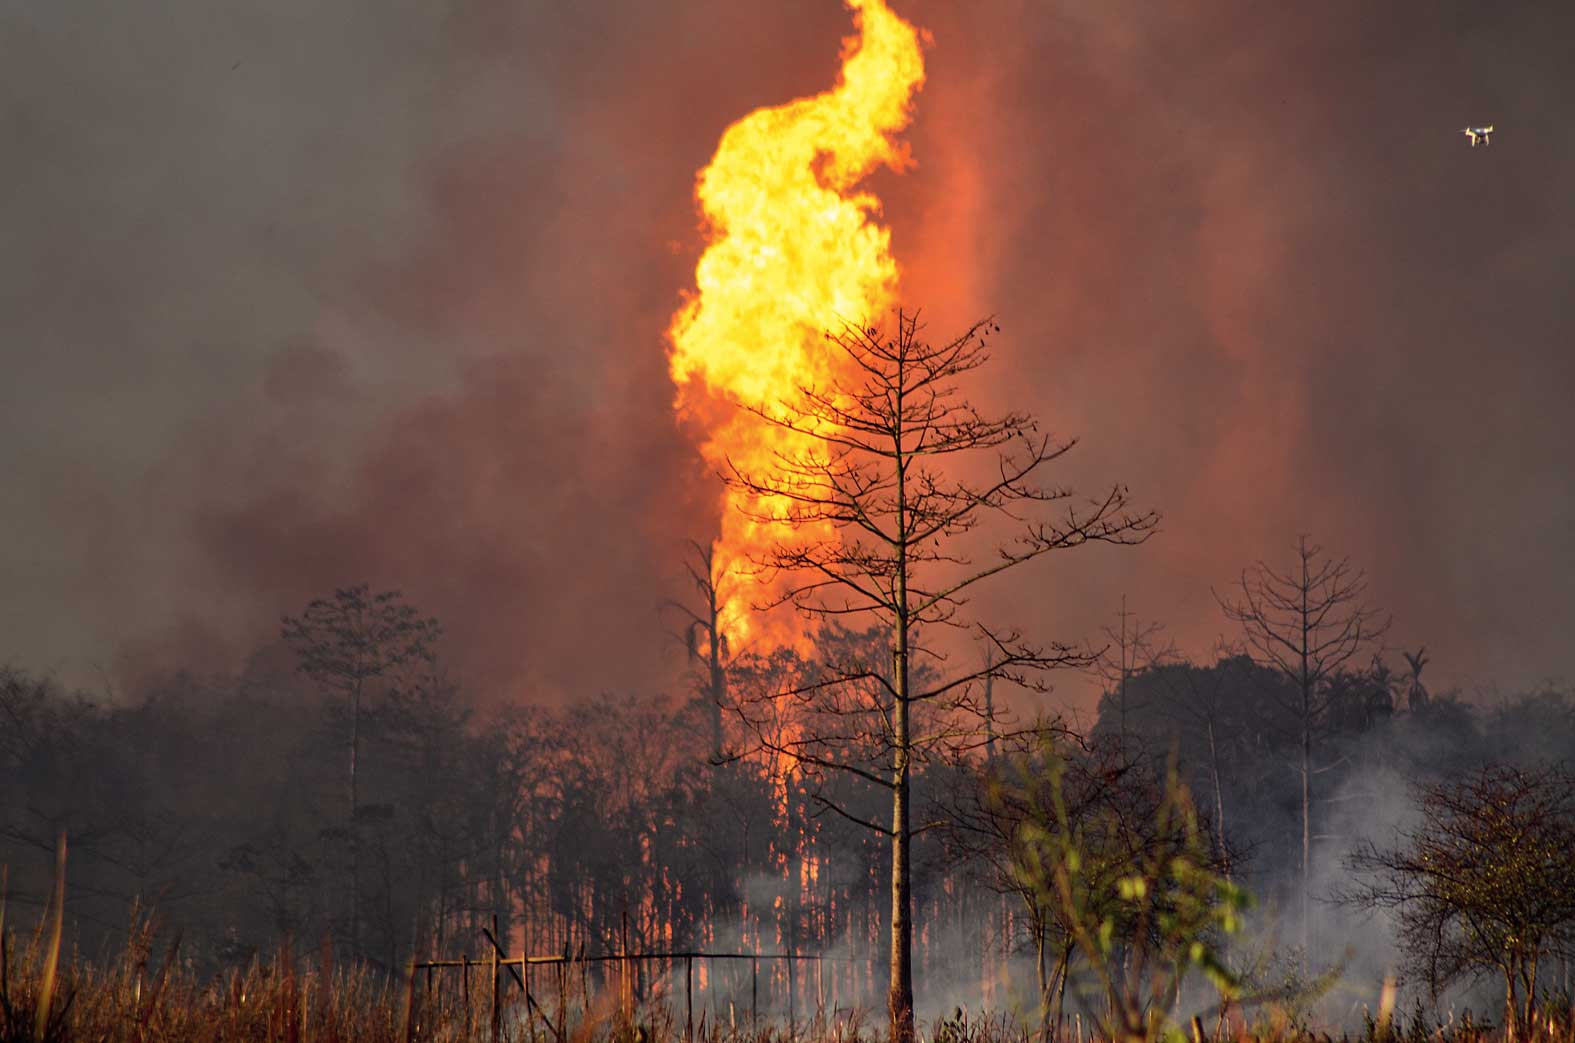 The fire at Baghjan oil field in Tinsukia on Tuesday.